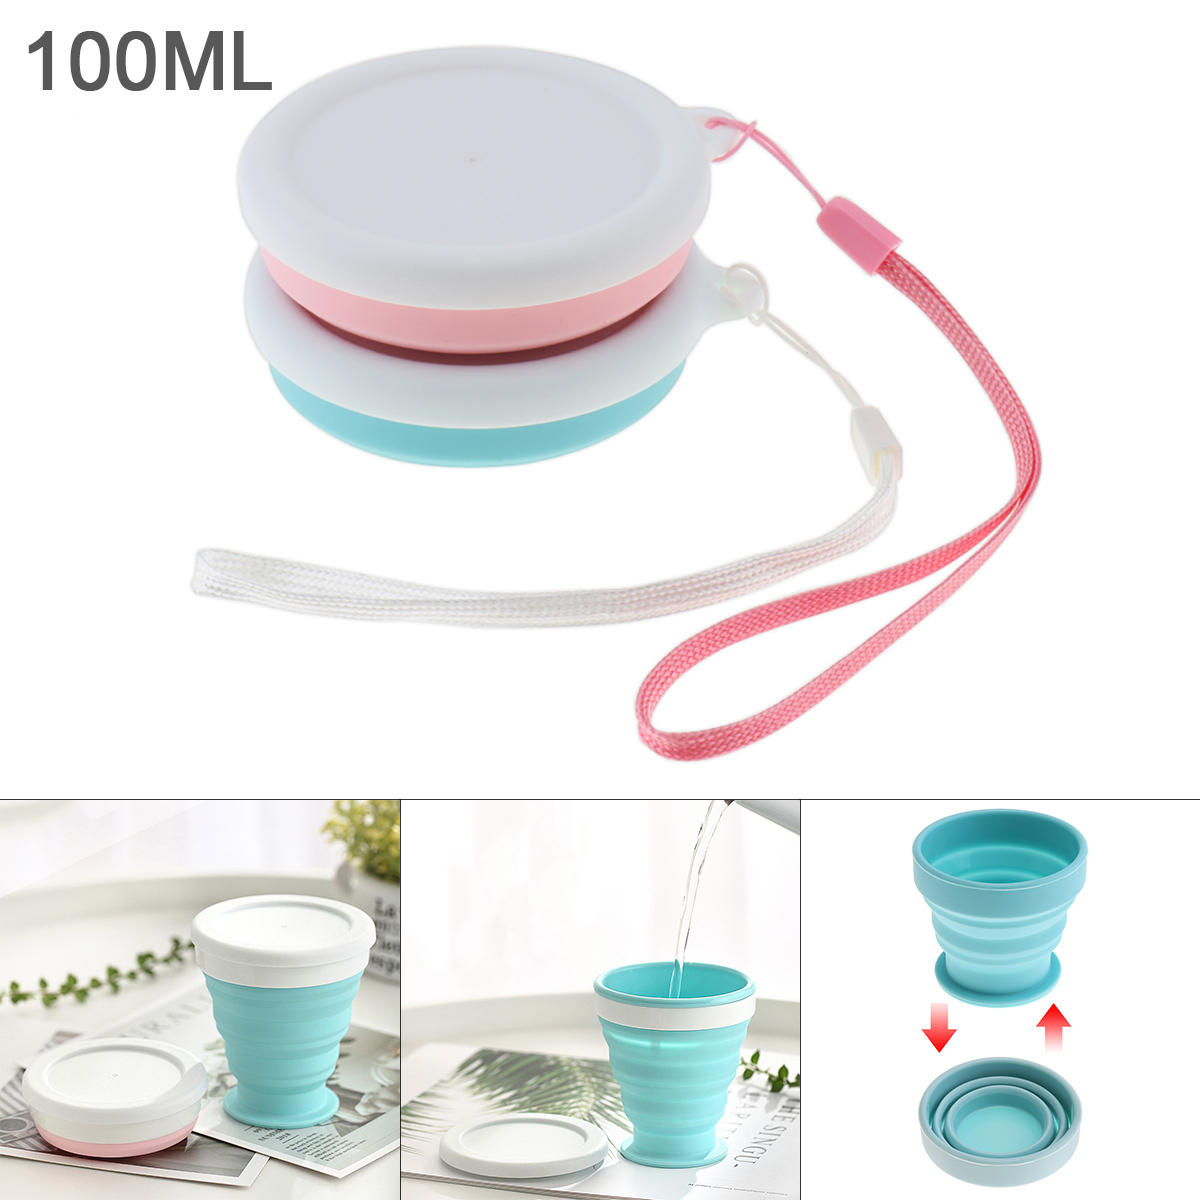 100ML 2 Colors Portable Circular Scalable Silicone Folding Cup With  Tether For - 50 Centigrade ~ 200 Centigrade